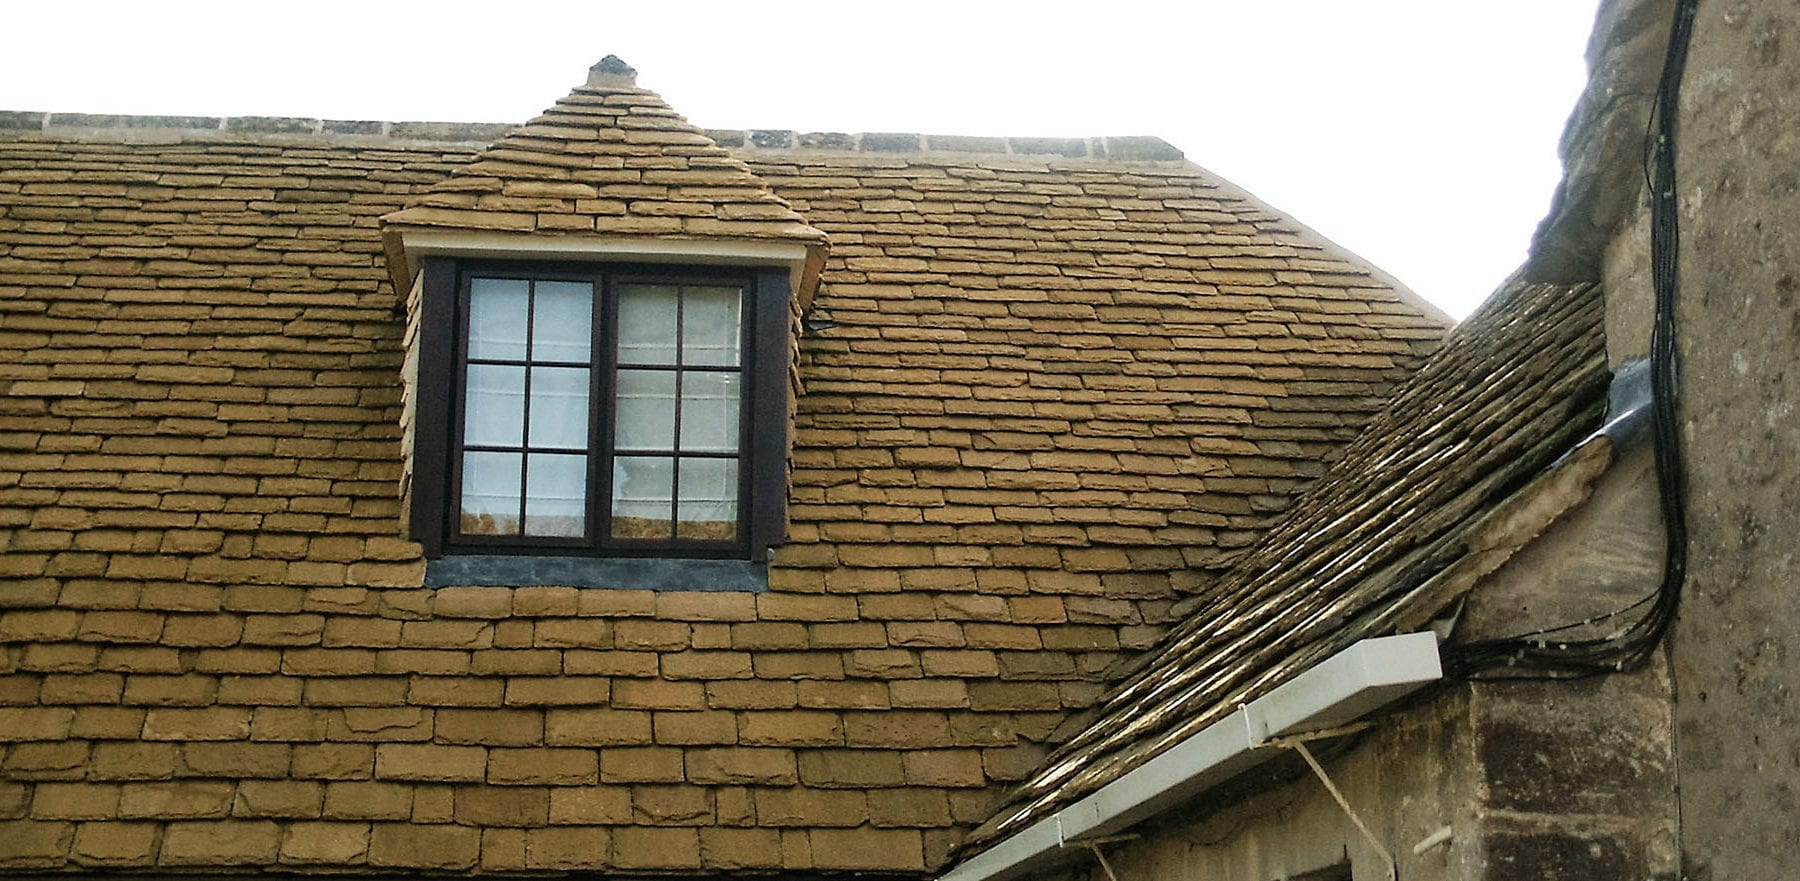 Lifestiles - Natural Stone Roof Tiles - Stroud, England 3